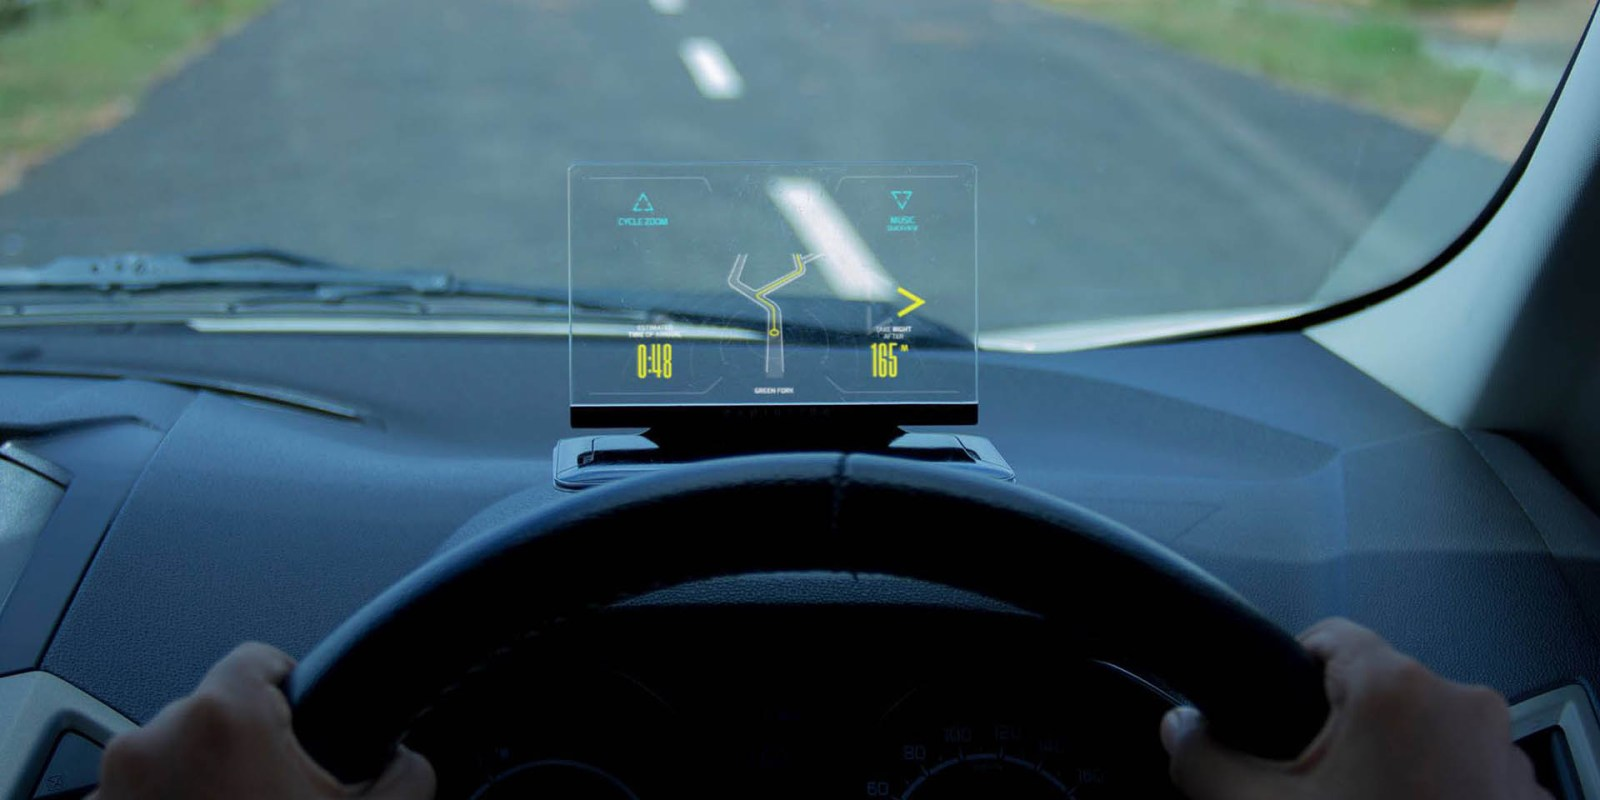 Exploride combines the best iPhone features into one safe head-up display unit for your car